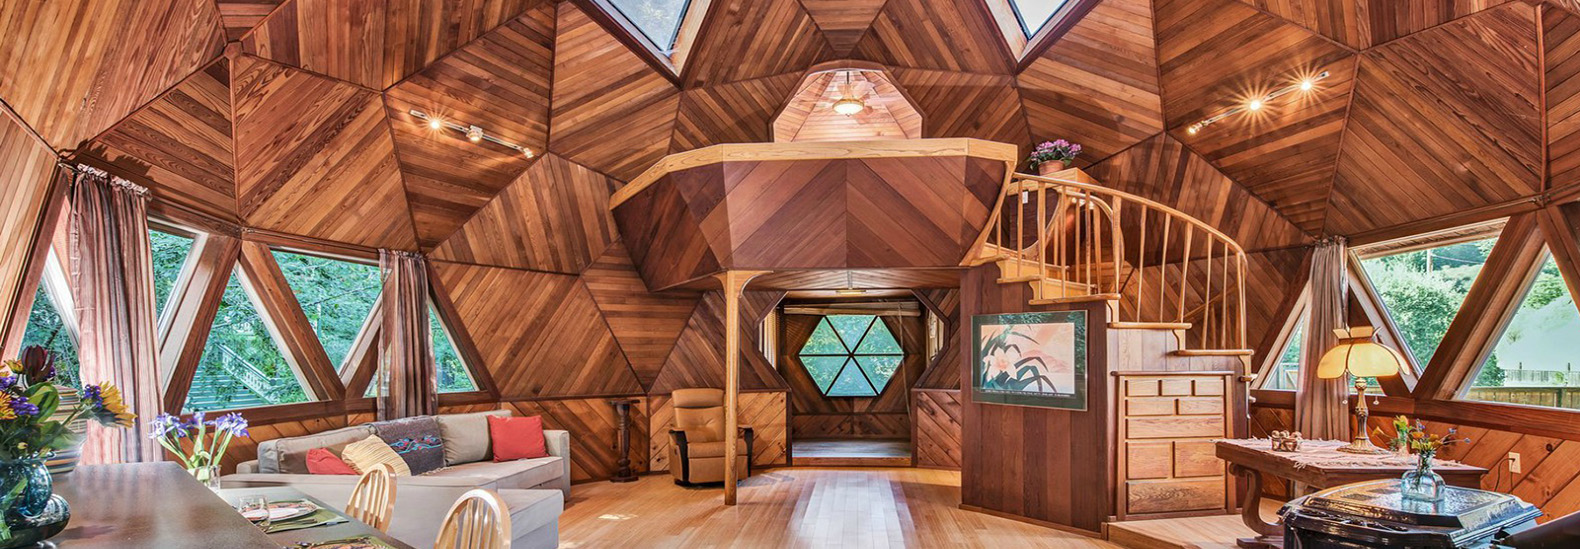 This incredible geodesic dome home could be yours for $475k